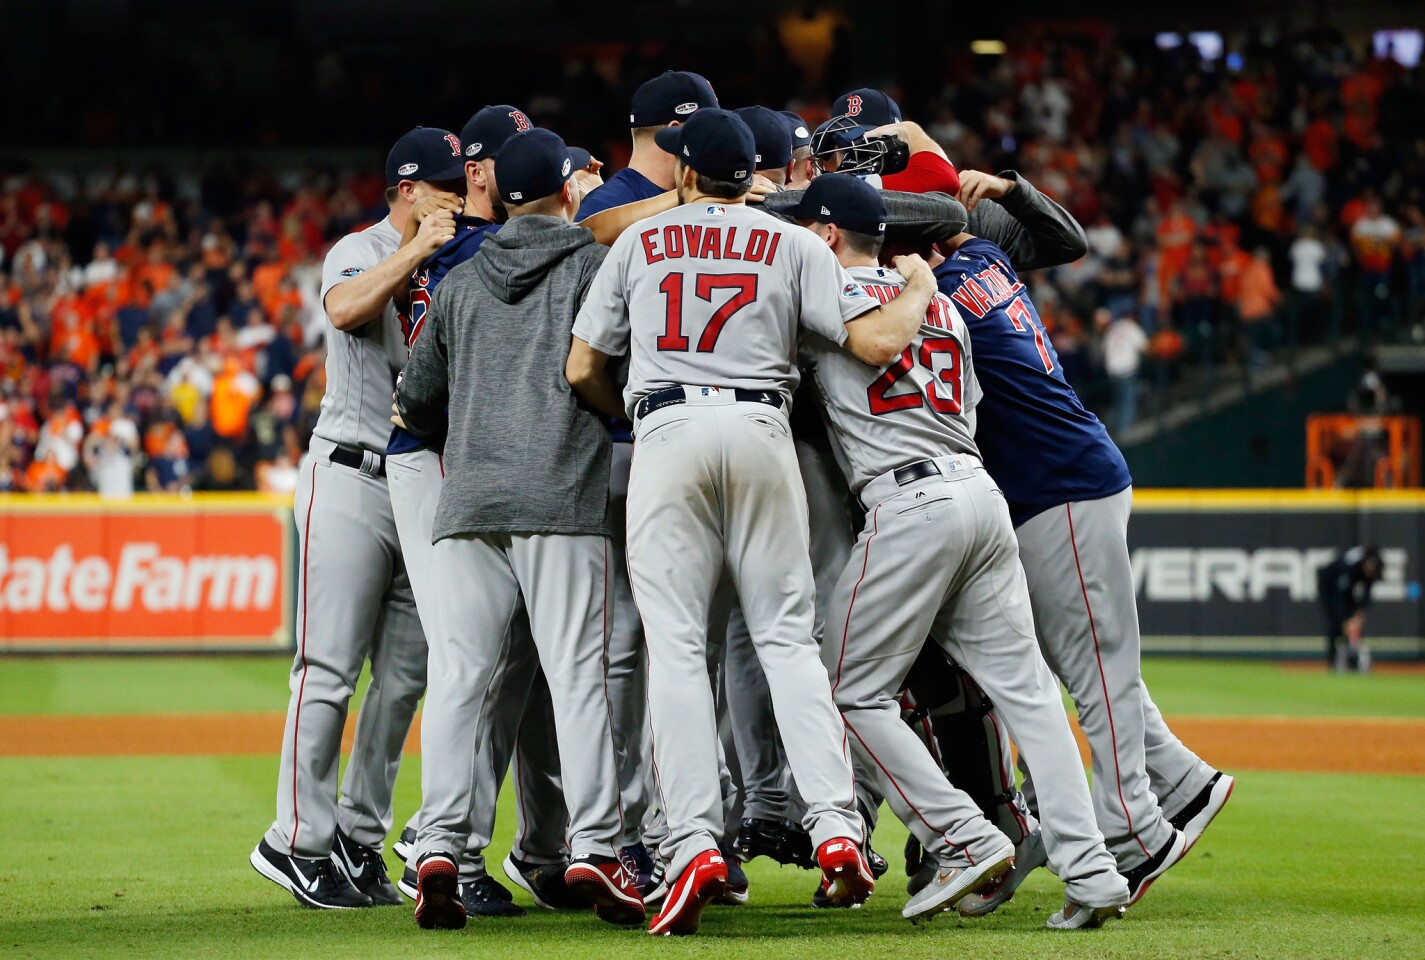 HOUSTON, TX - OCTOBER 18: The Boston Red Sox celebrate defeating the Houston Astros 4-1 in Game Five of the American League Championship Series to advance to the 2018 World Series at Minute Maid Park on October 18, 2018 in Houston, Texas. (Photo by Bob Levey/Getty Images) ** OUTS - ELSENT, FPG, CM - OUTS * NM, PH, VA if sourced by CT, LA or MoD **